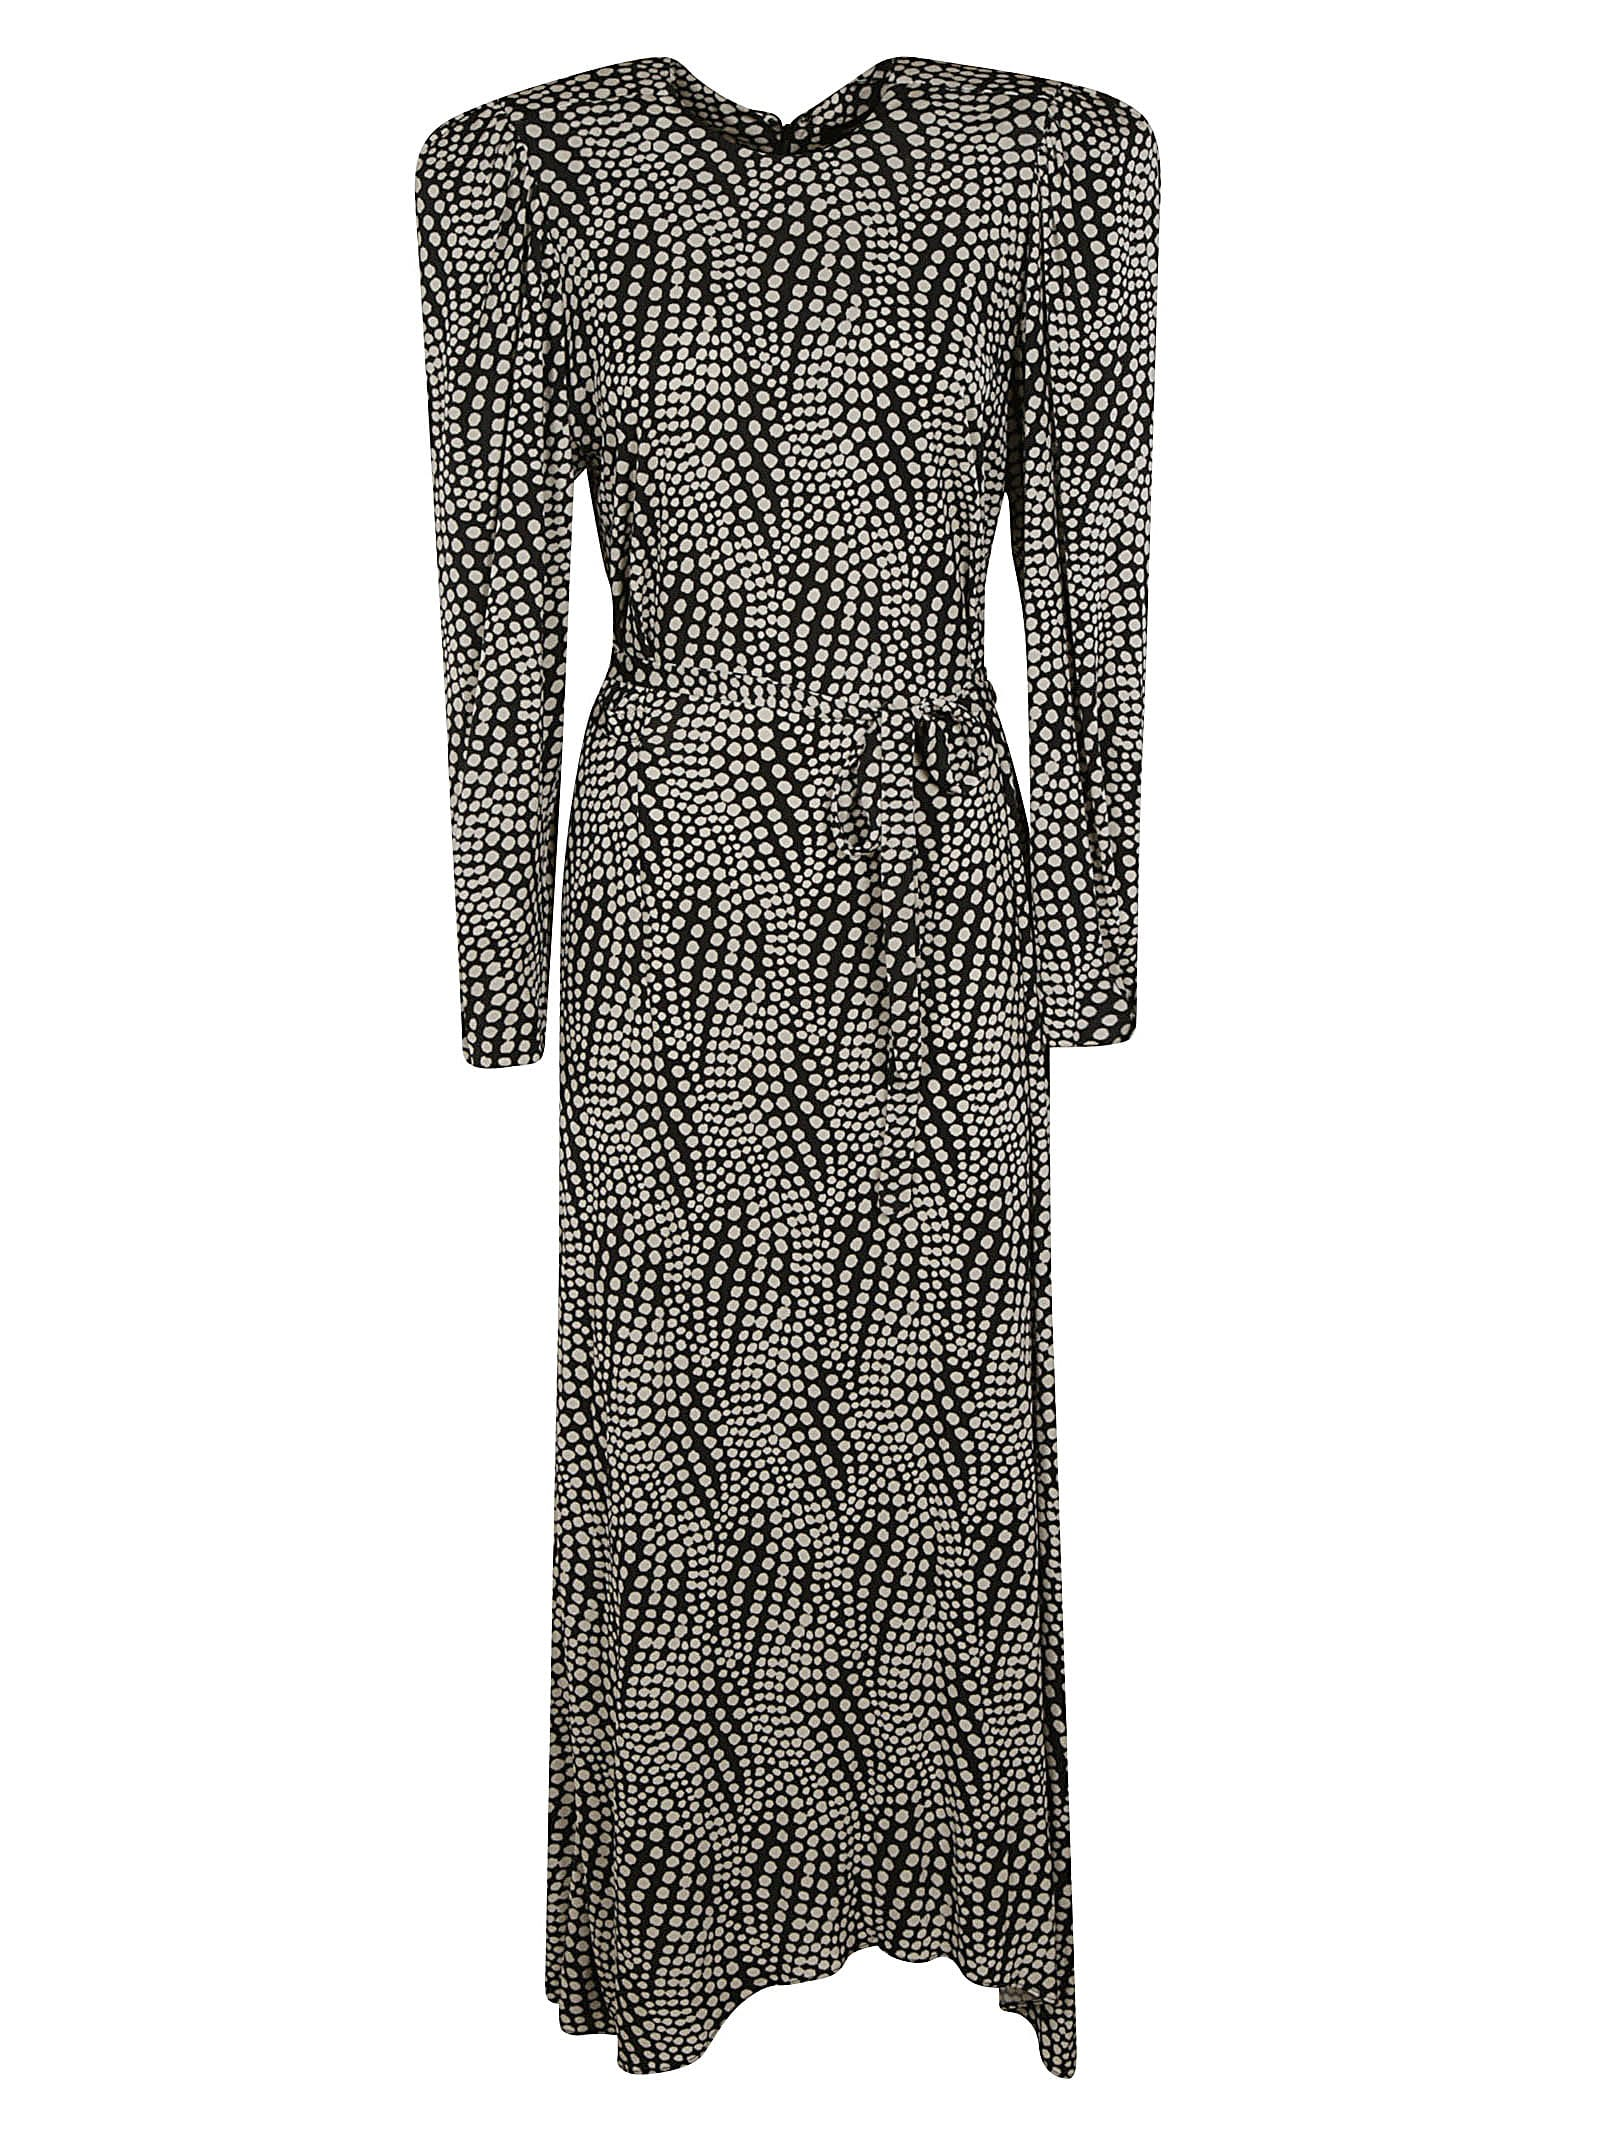 Isabel Marant Telenda Dress